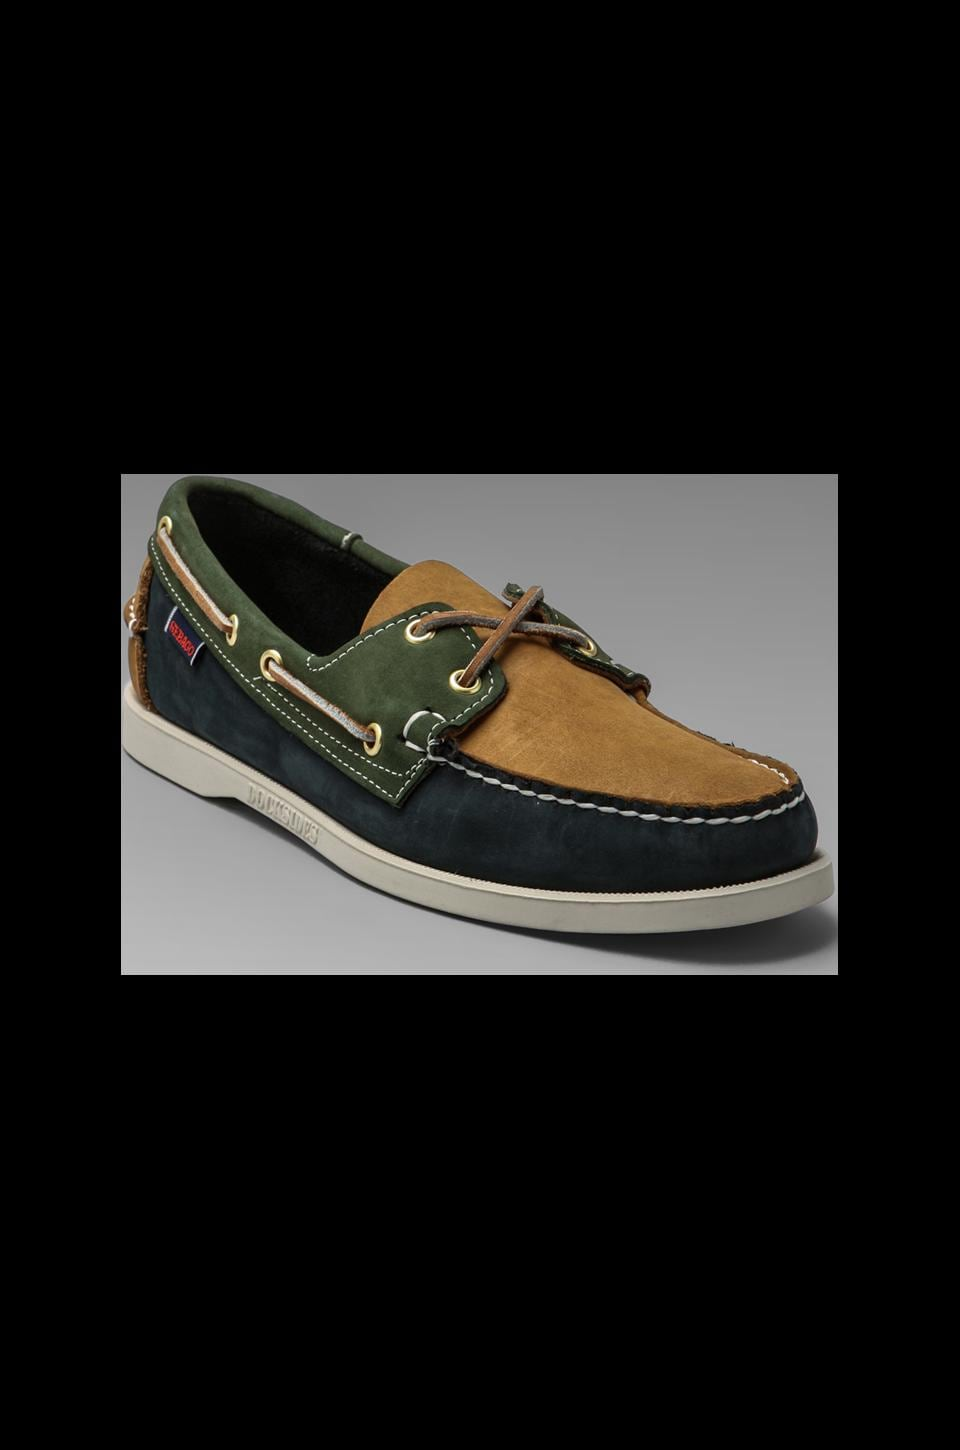 Sebago Spinnaker in Navy/Tan/Pine